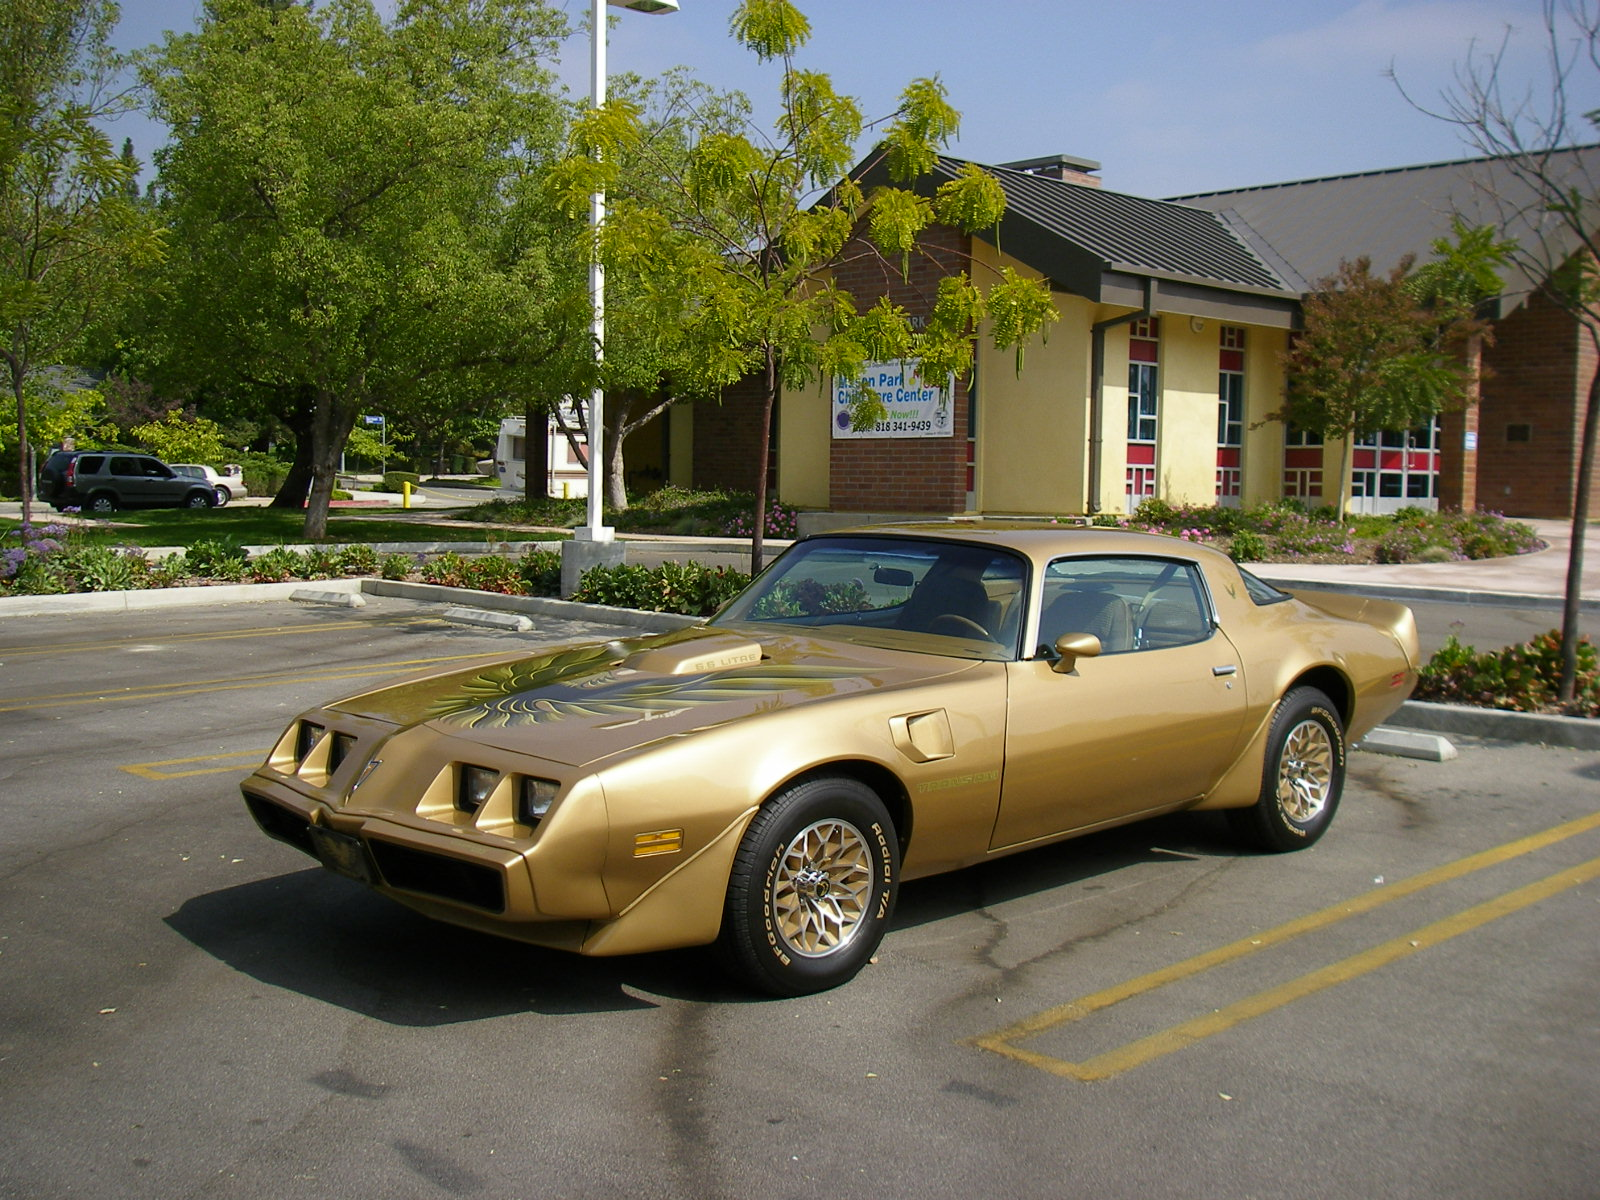 1979 Trans Am Picture Gold Trans Am 1979